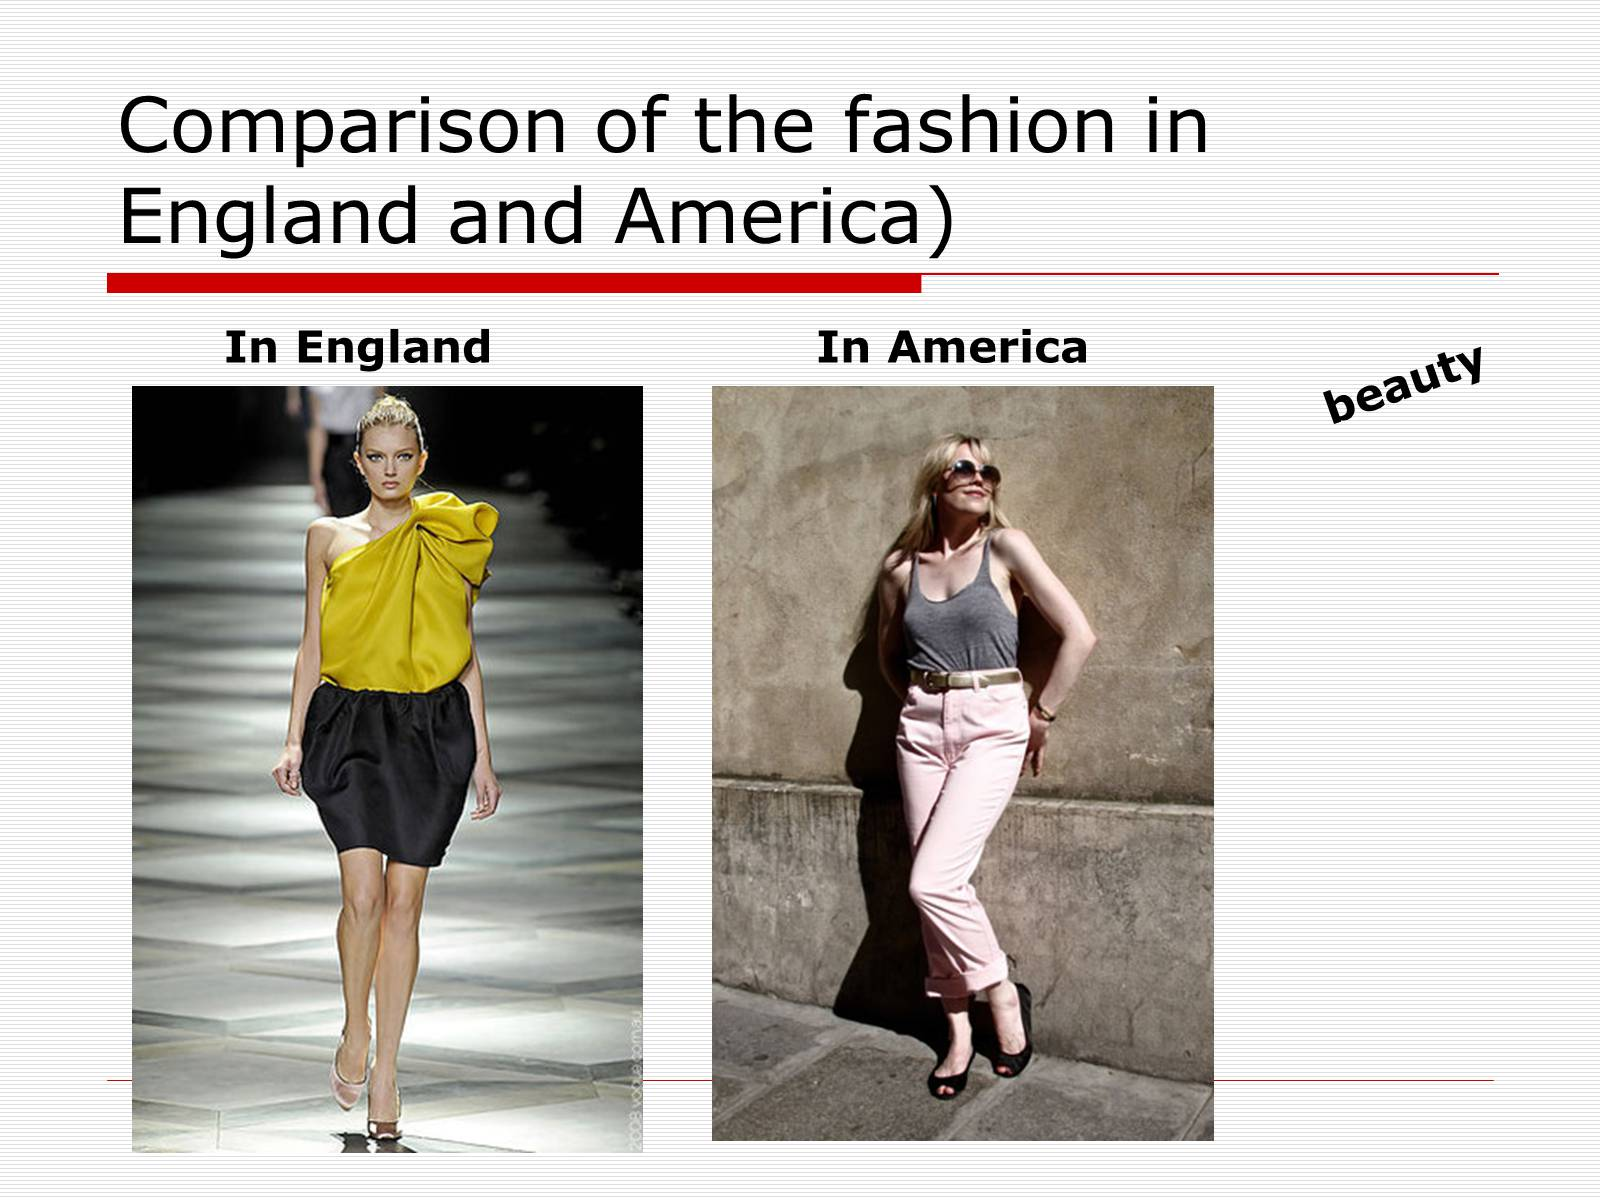 Презентація на тему «Comparison of the fashion in England and America» - Слайд #45